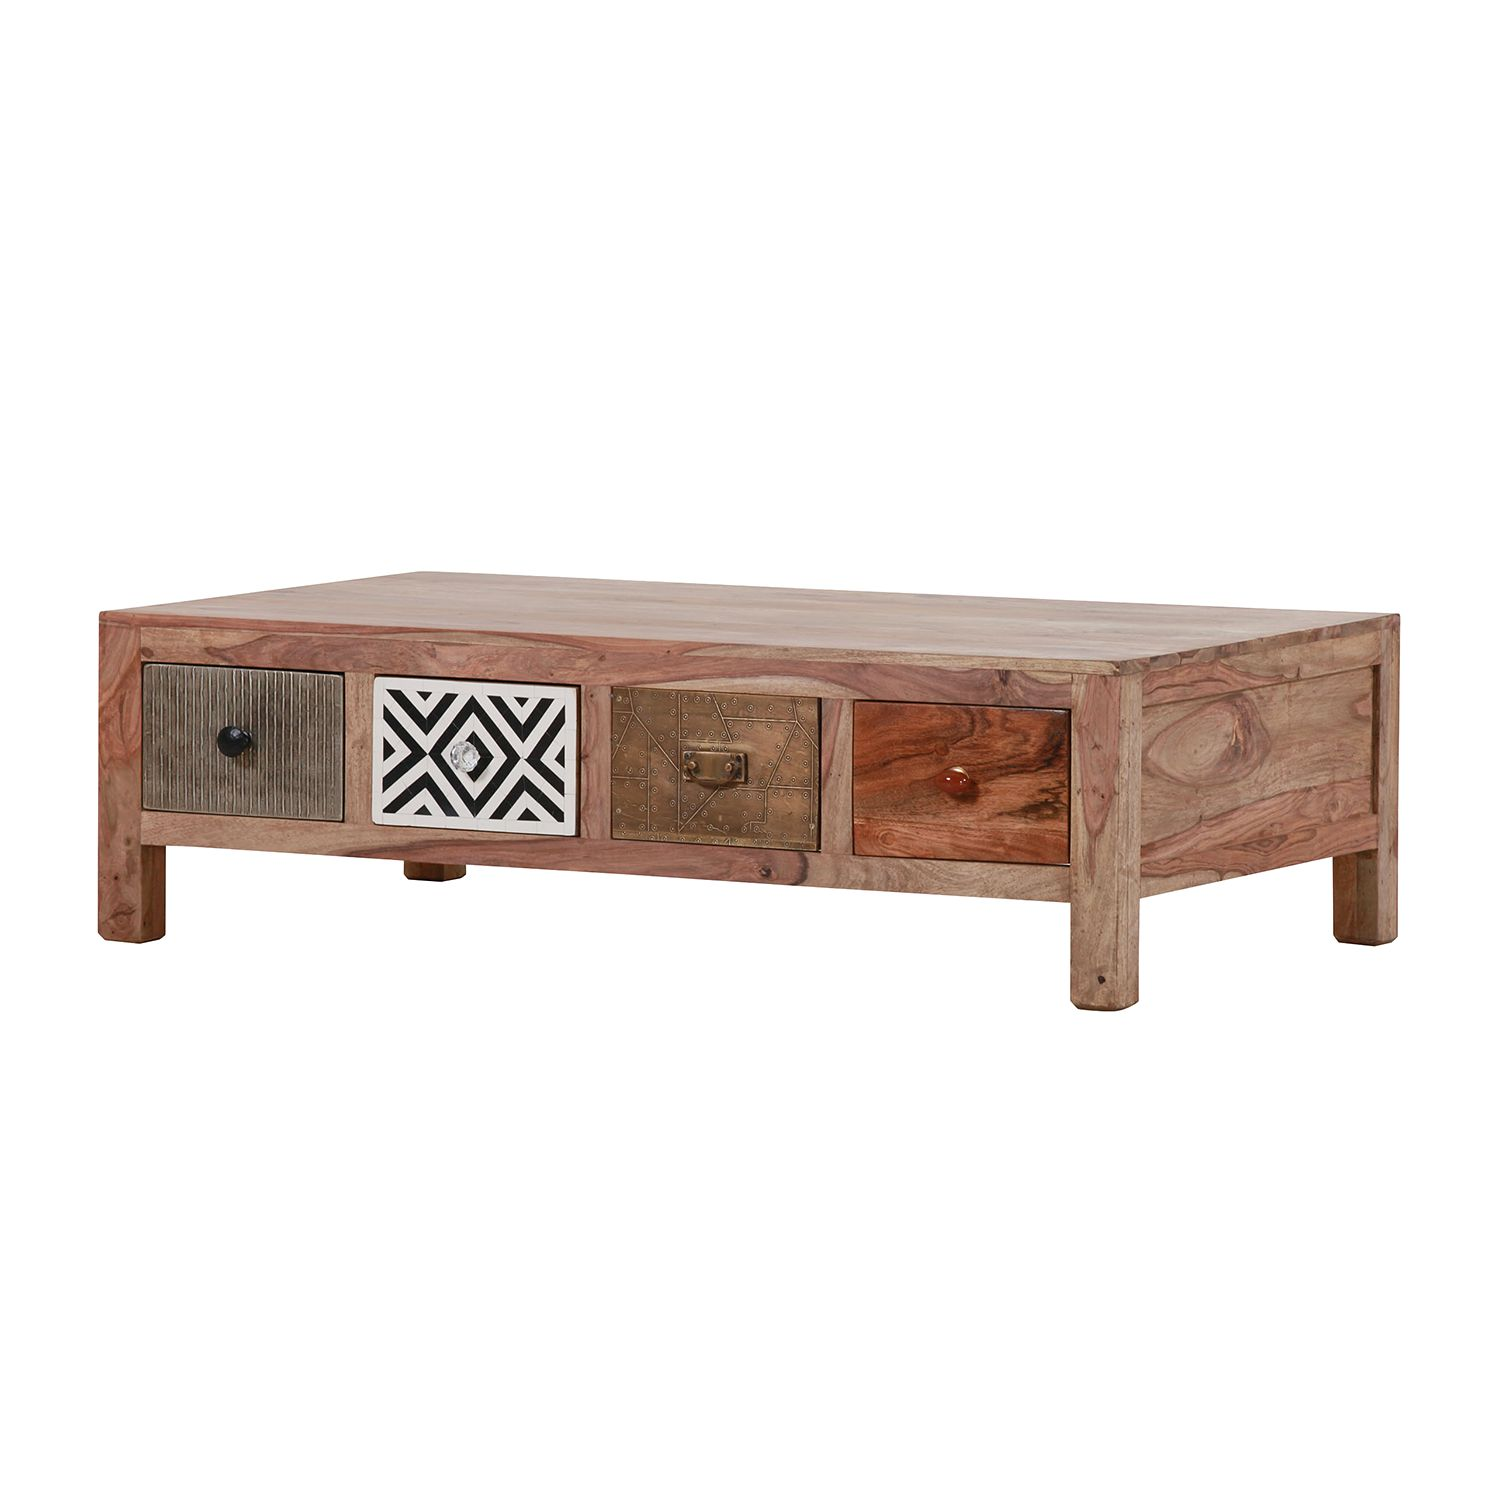 Table basse Jakarta Plus I - Sheesham massif, Red Living